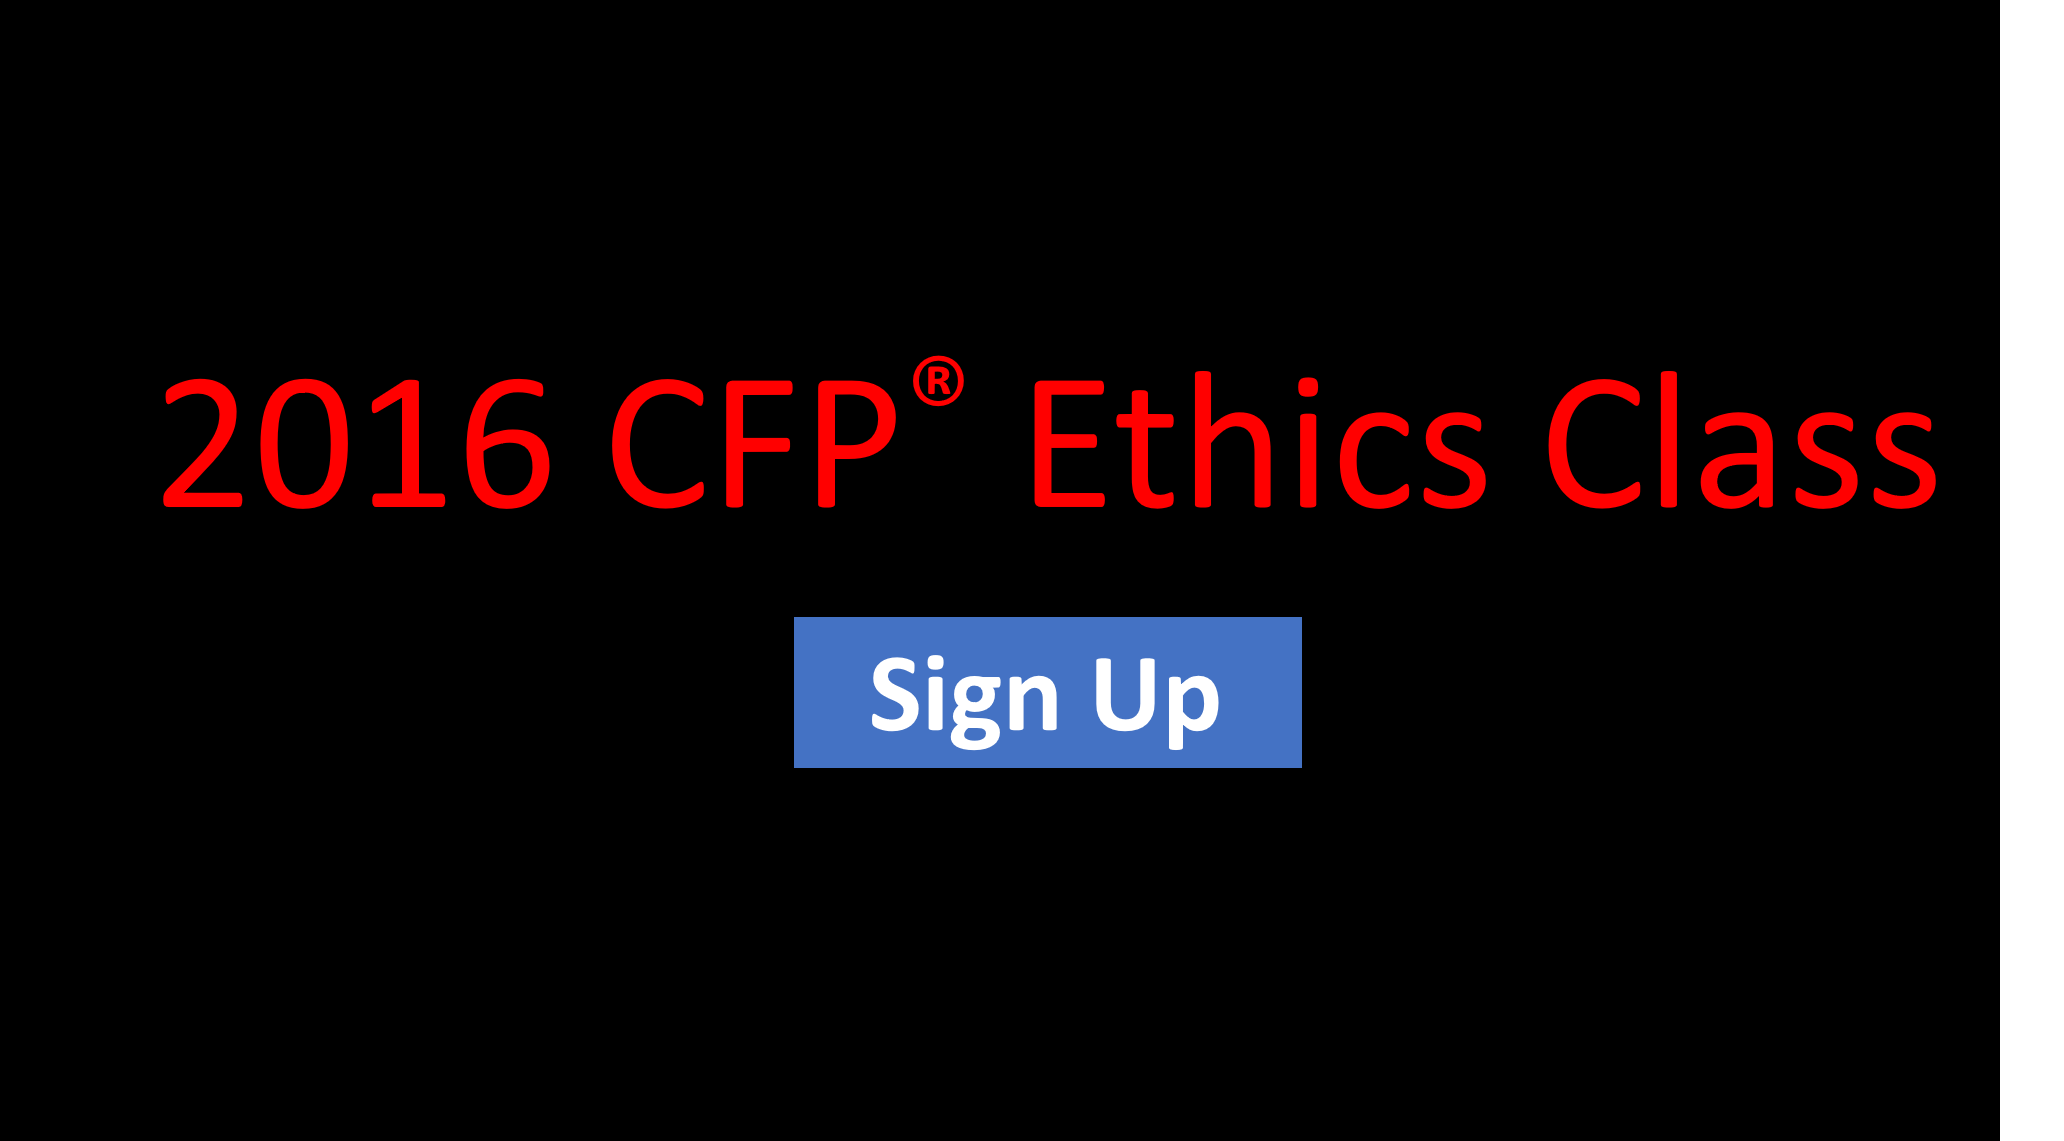 http://advisors4advisors.com/images/stories/article-images/2016-cfp-ethics-class.png